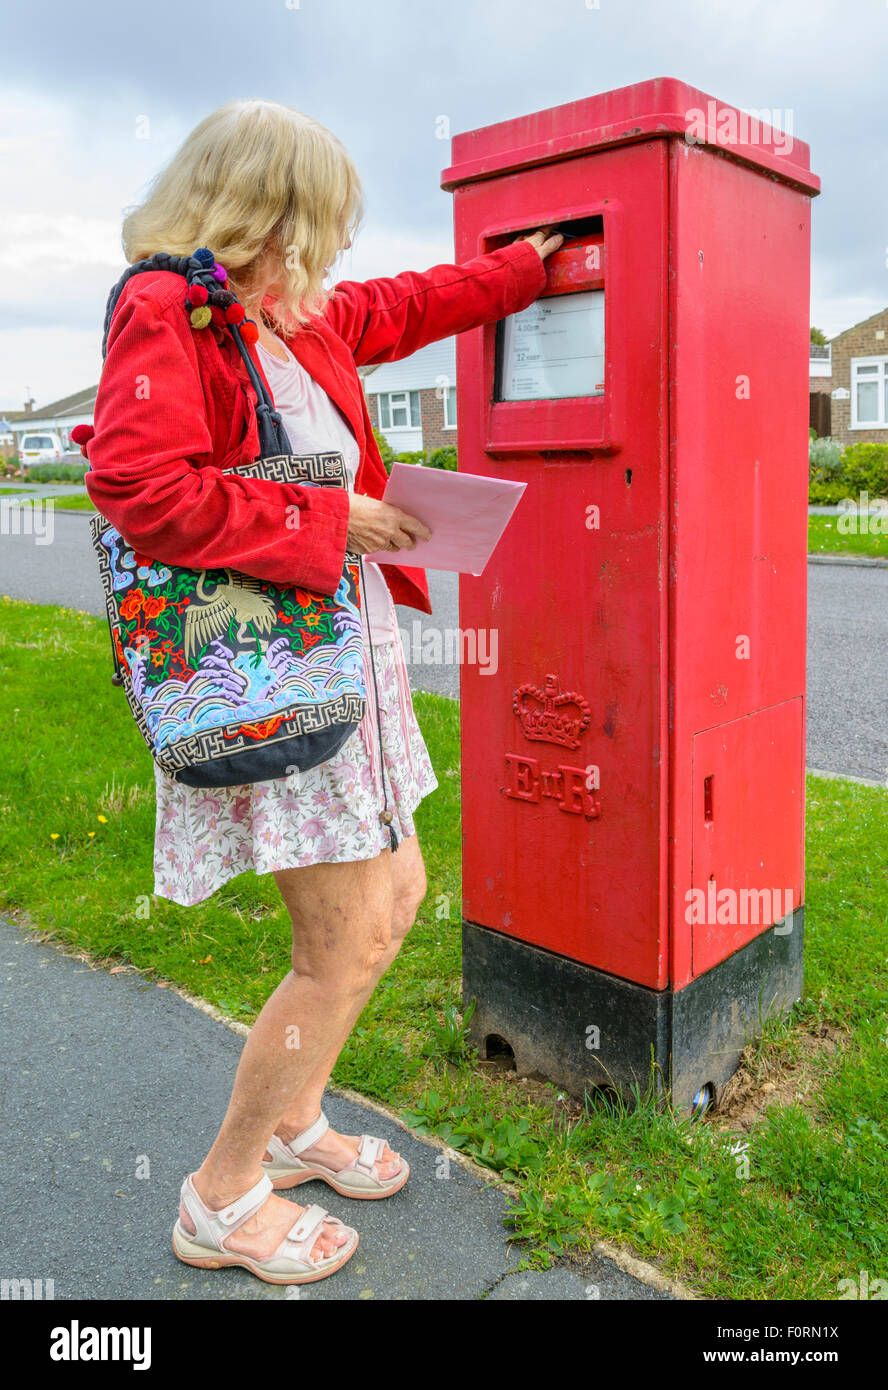 Middle aged woman posting a letter in a red rectangular letter box in England, UK. - Stock Image